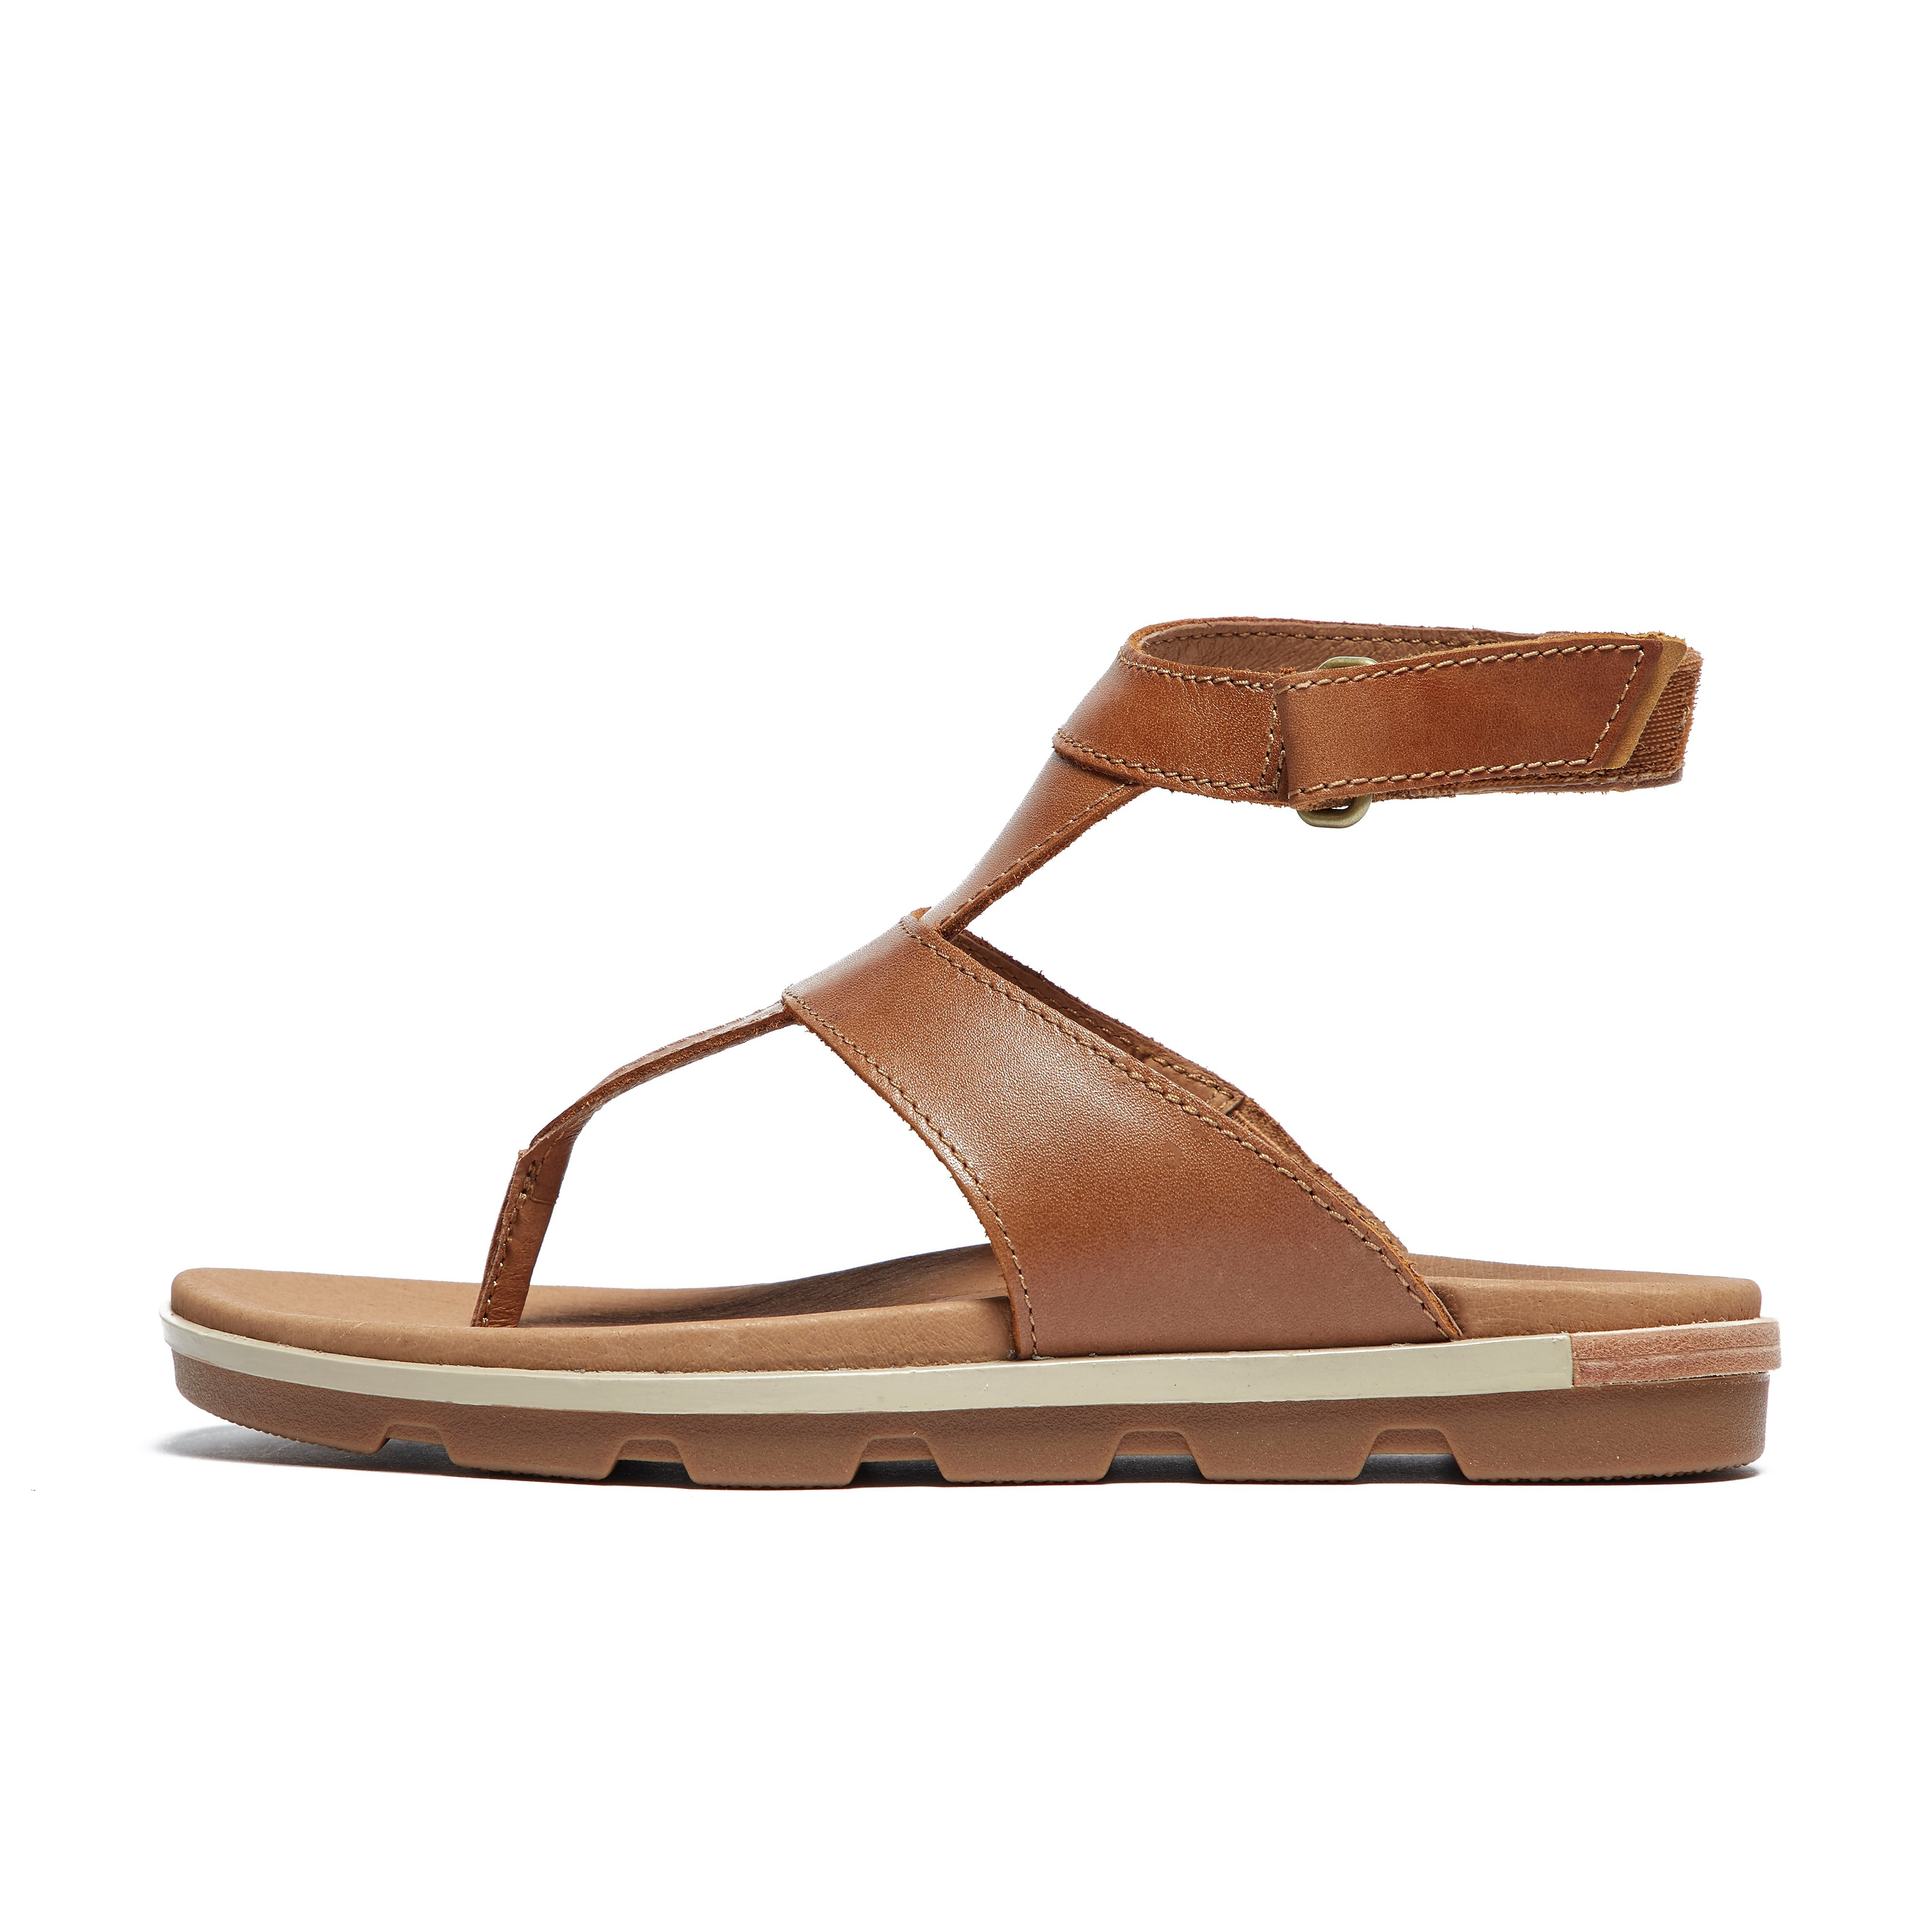 Sorel Torpeda Ankle Strap Women's Walking Sandals